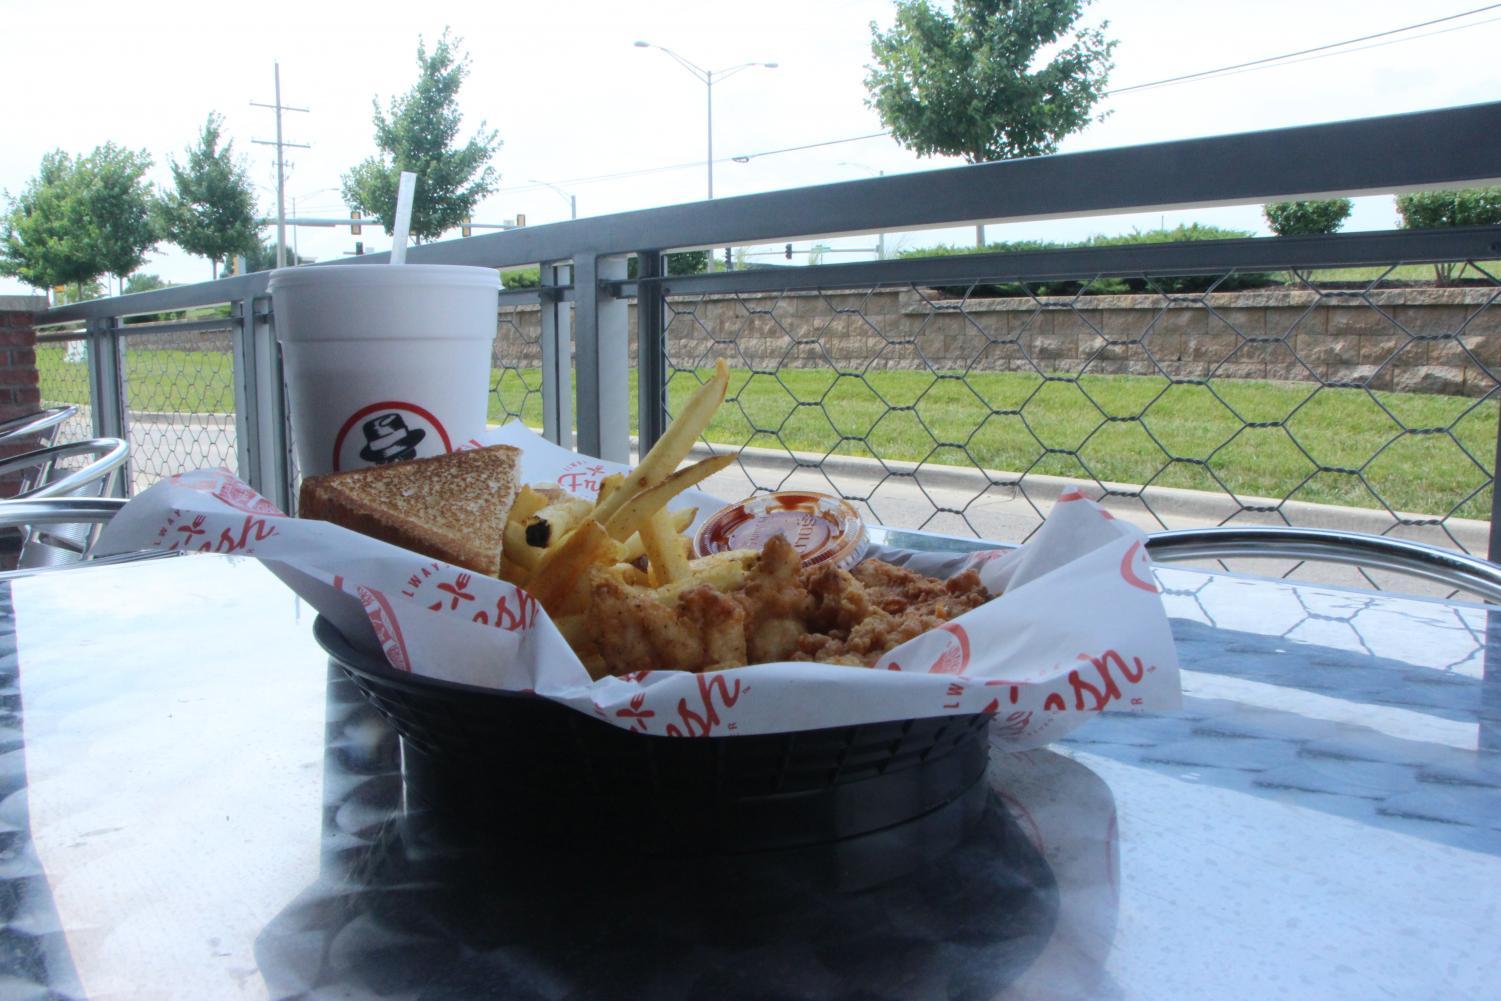 The three piece chicken tender meal from Slim Chickens sits on a table outside.